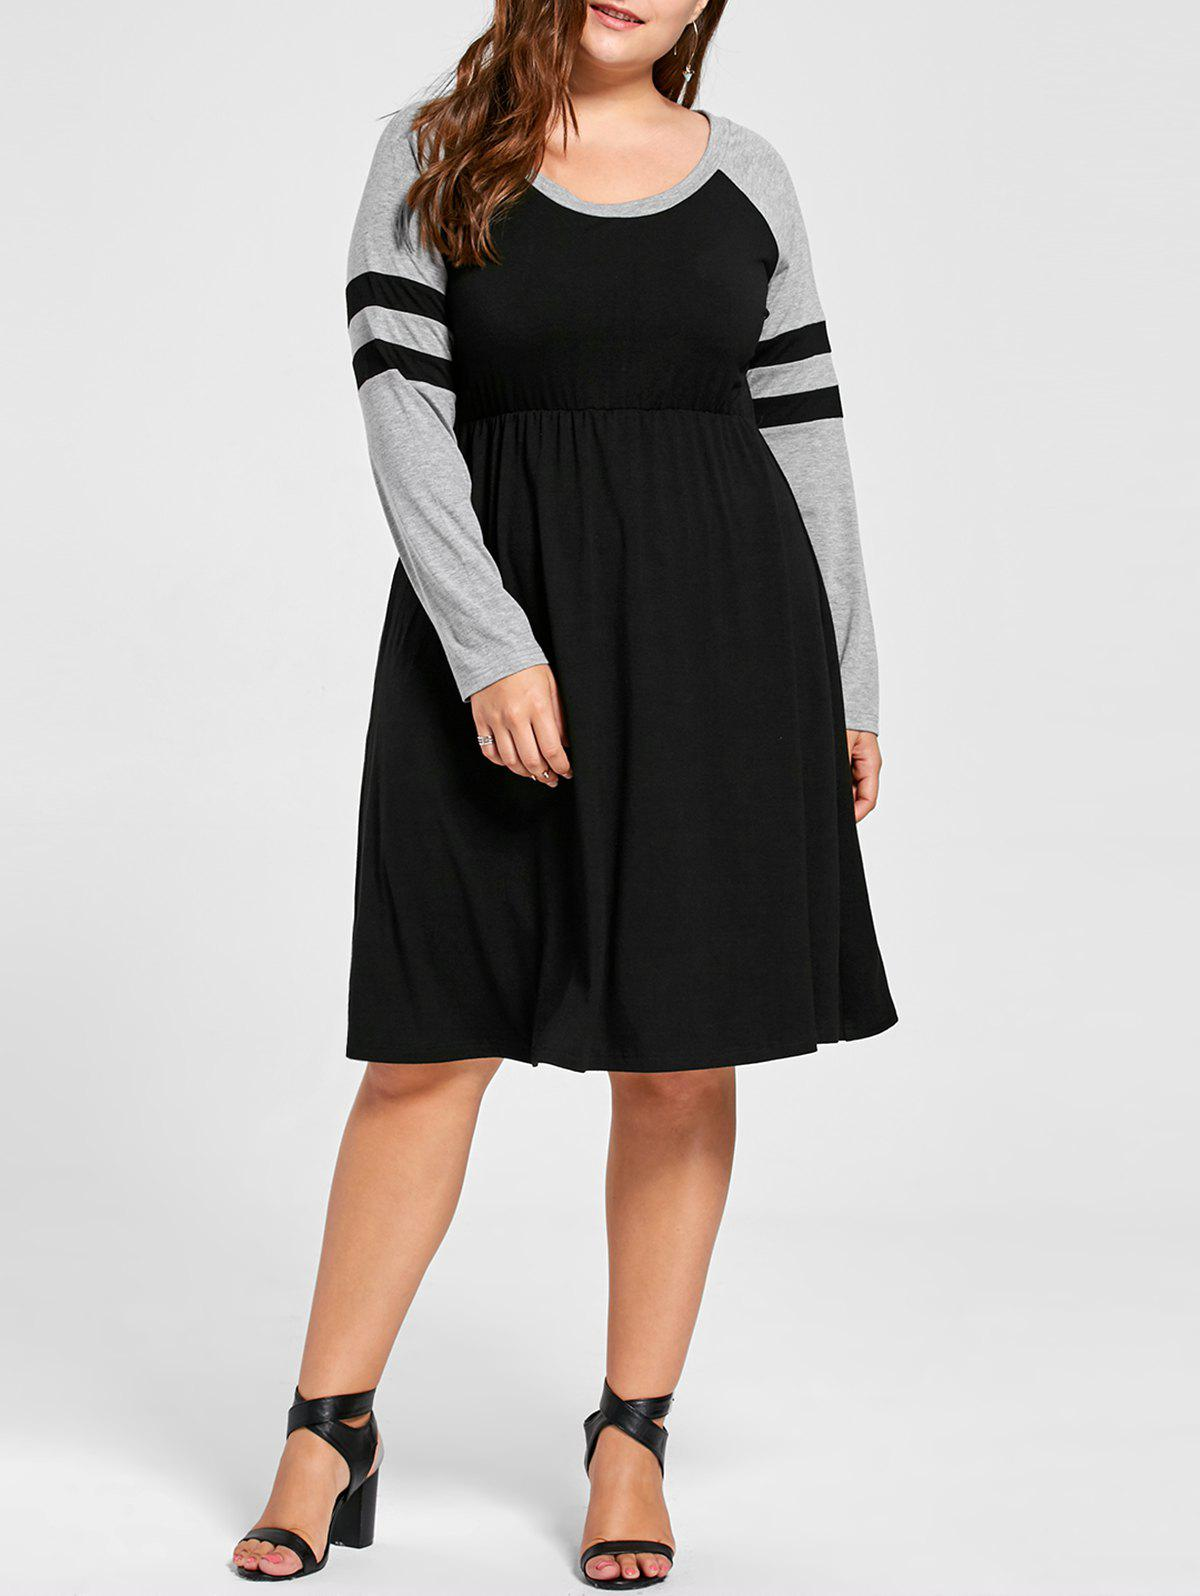 Plus Size Long Sleeve Tee DressWOMEN<br><br>Size: 4XL; Color: BLACK; Style: Casual; Material: Polyester,Spandex; Silhouette: A-Line; Dresses Length: Knee-Length; Neckline: Scoop Neck; Sleeve Length: Long Sleeves; Pattern Type: Striped; With Belt: No; Season: Fall,Spring,Summer; Weight: 0.4000kg; Package Contents: 1 x Dress;